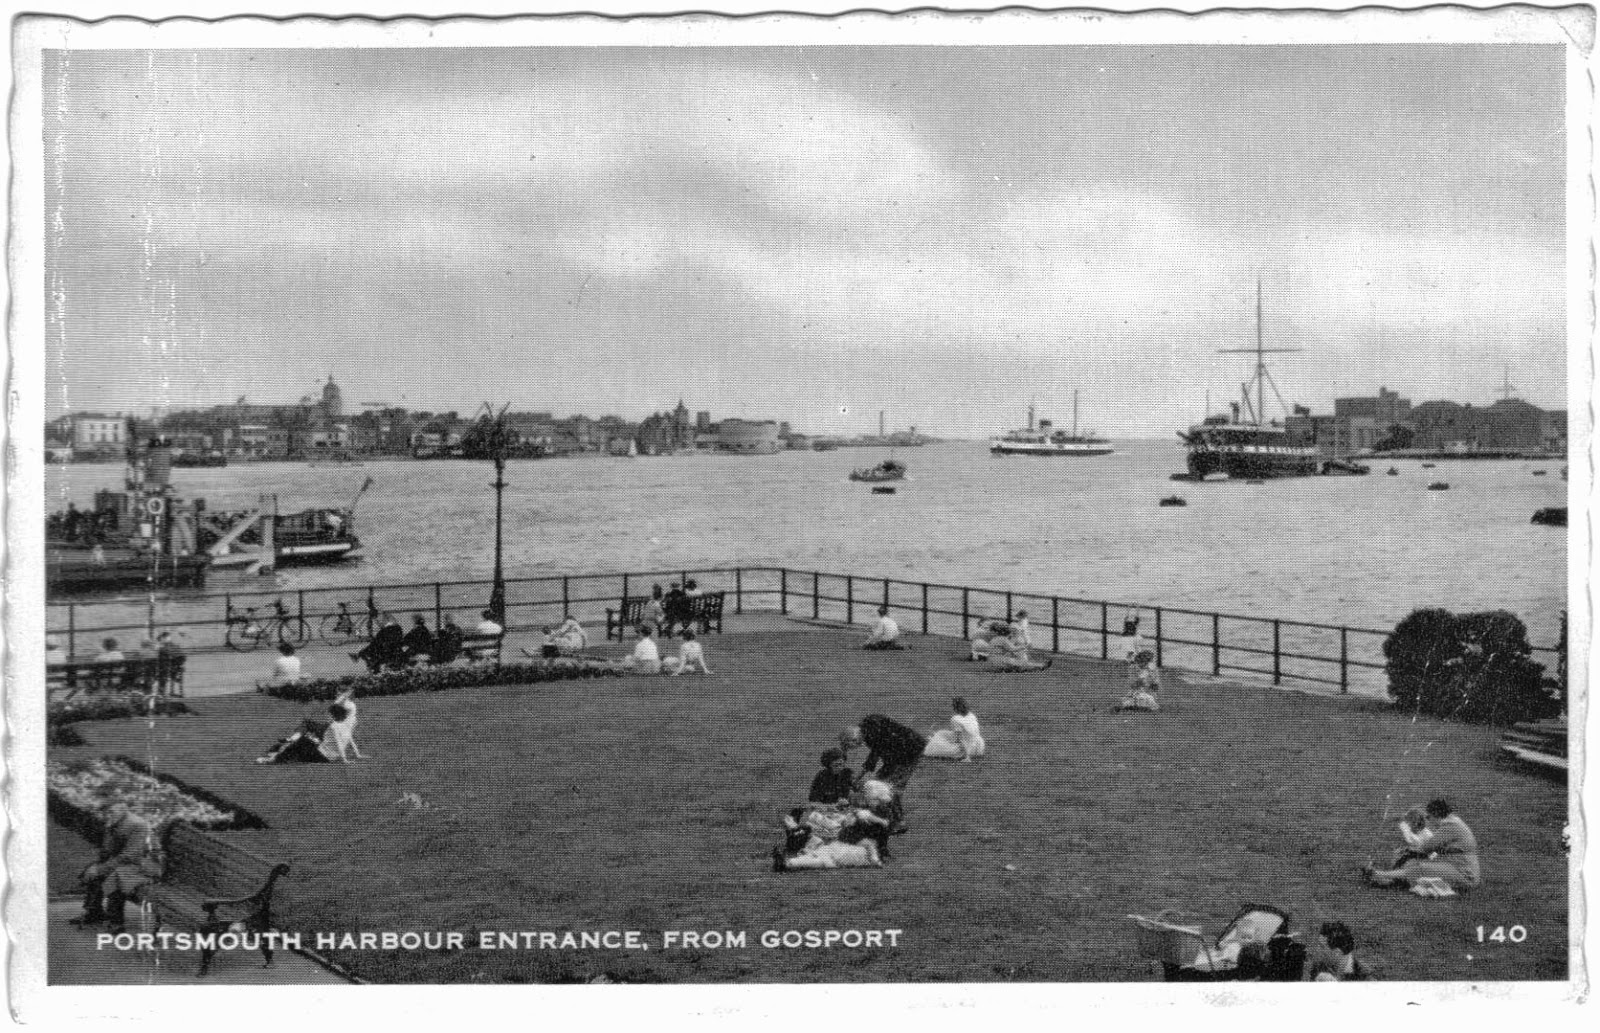 1950s view of Portsmouth Harbour entrance from Gosport